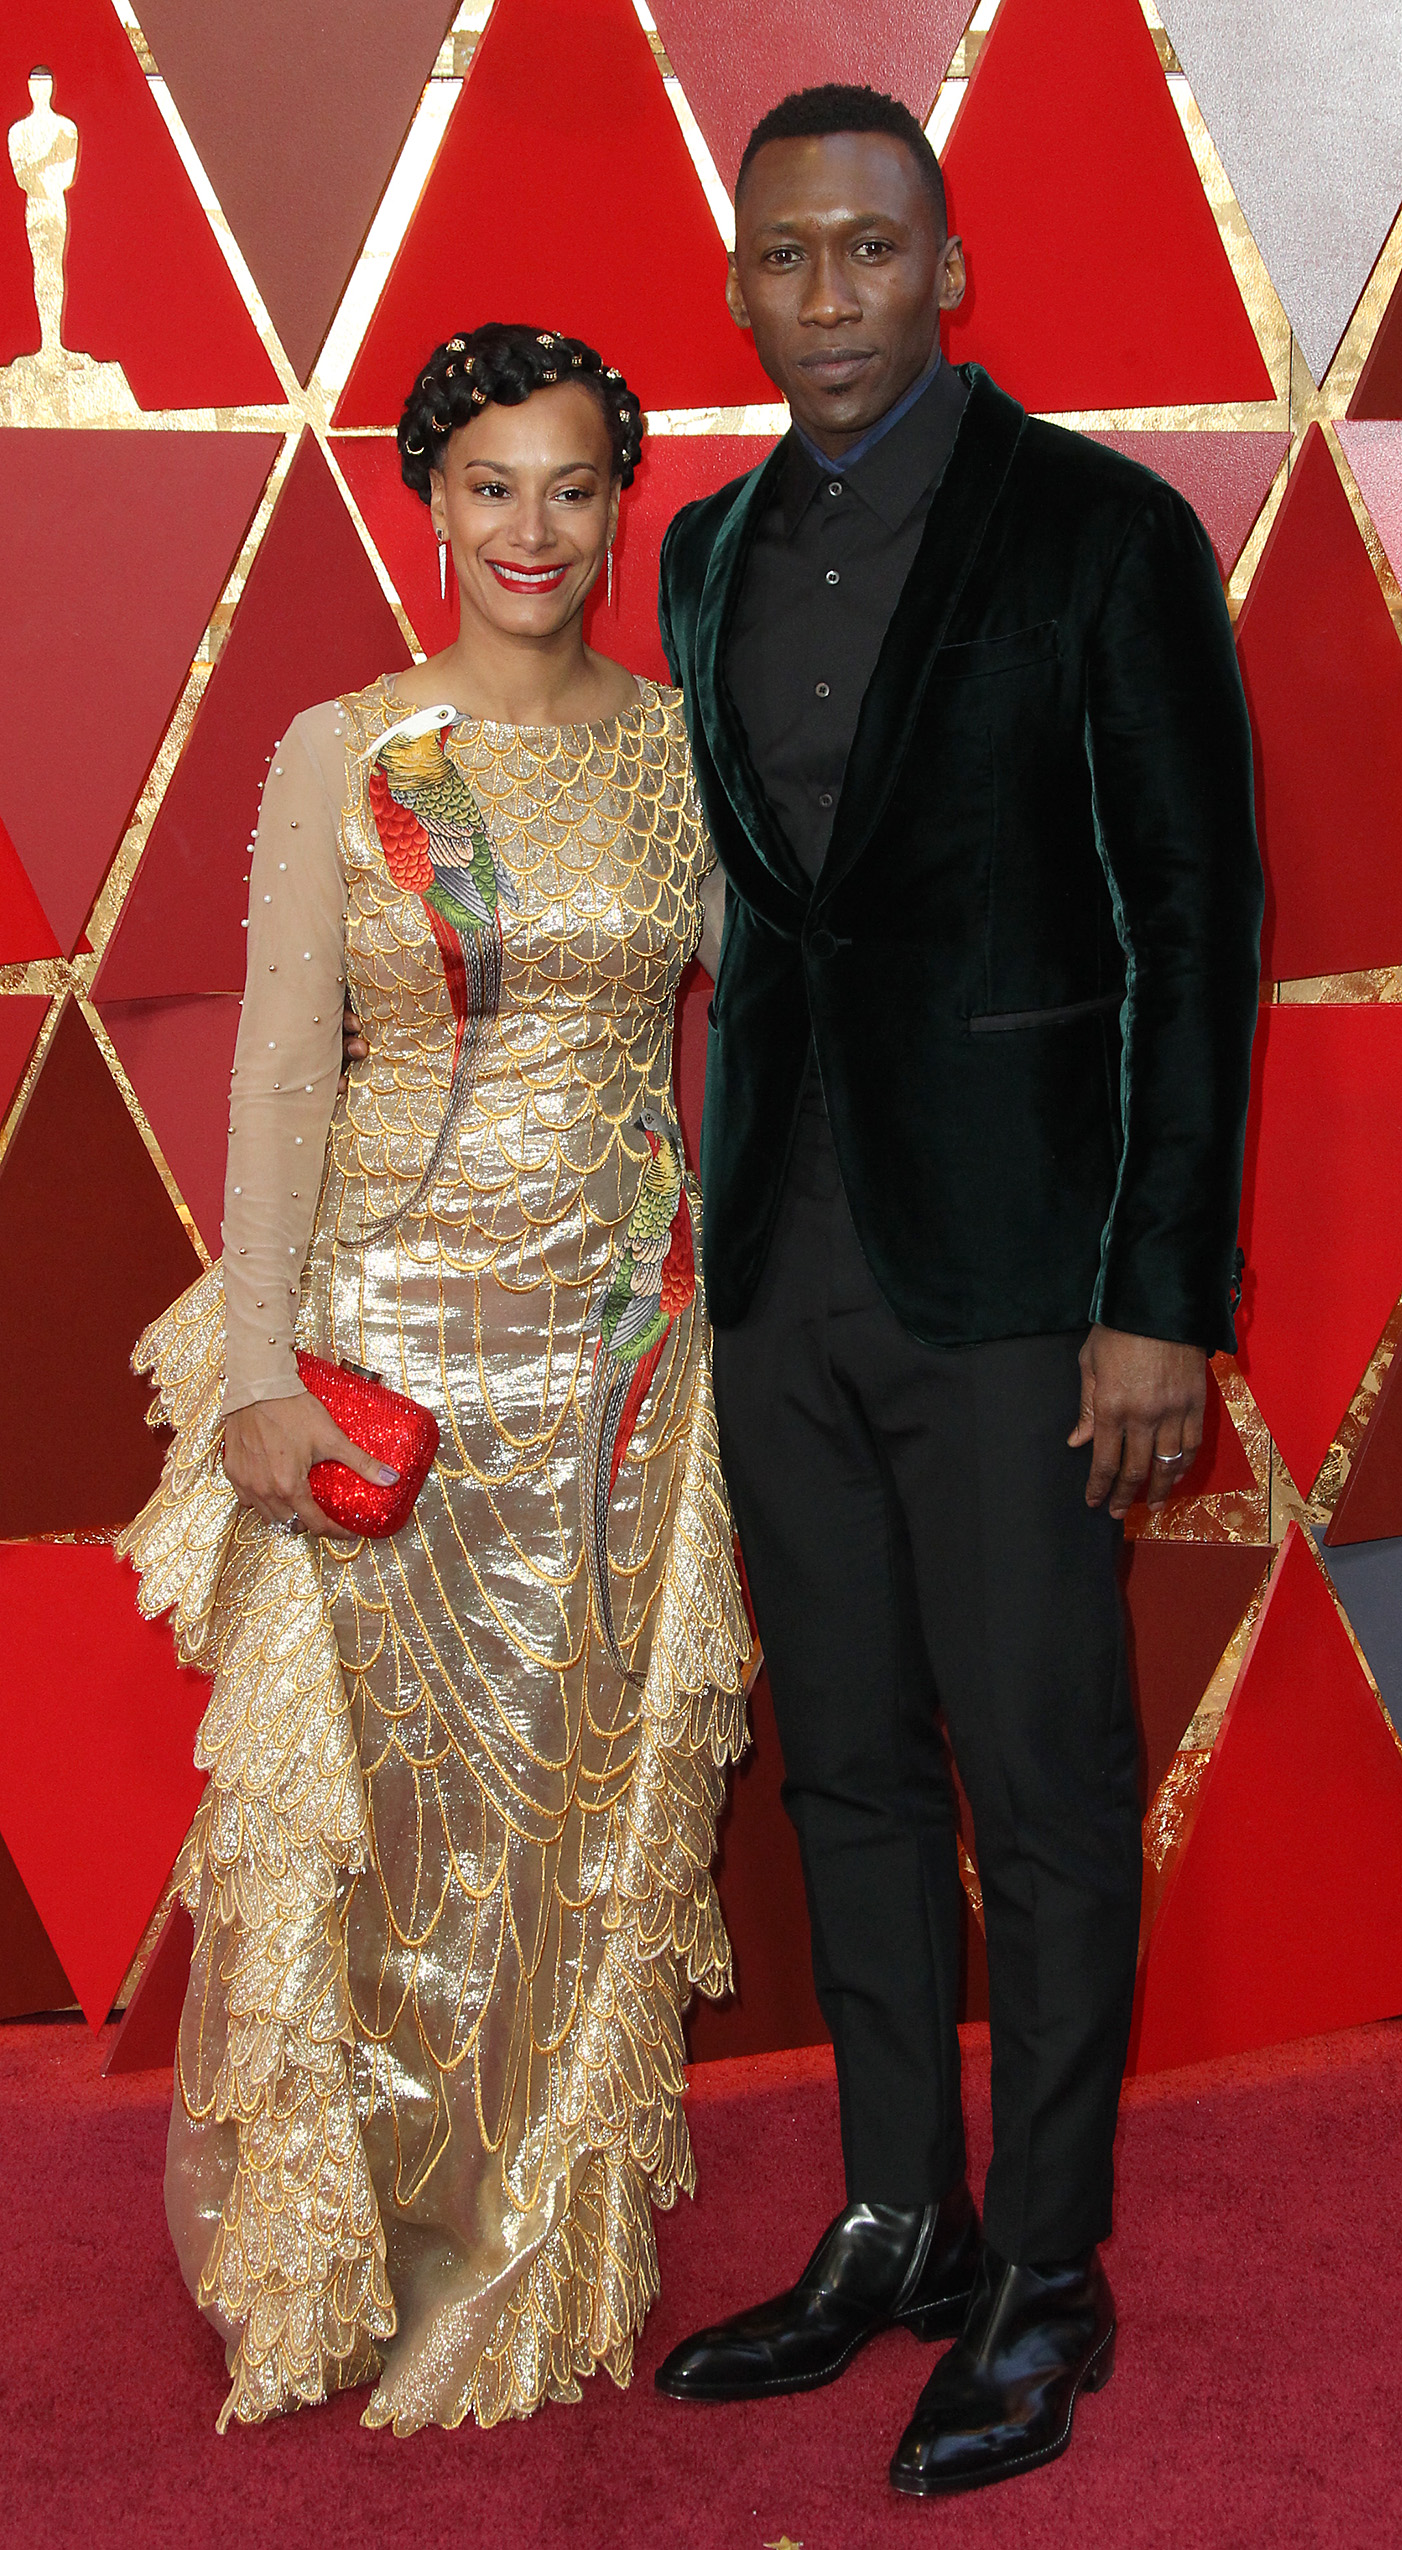 Fatherhood looks gooooood on Mahershala! The Moonlight star, who became the first Muslim actor to win an Oscar last year, couldn't stop gushing about what a blessing his one-year-old daughter was as he sported a dark emerald velvet Berluti tux, while his wife opted for a gold gown adorned with birds. (Image: Adriana M. Barraza/WENN.com)<p></p>